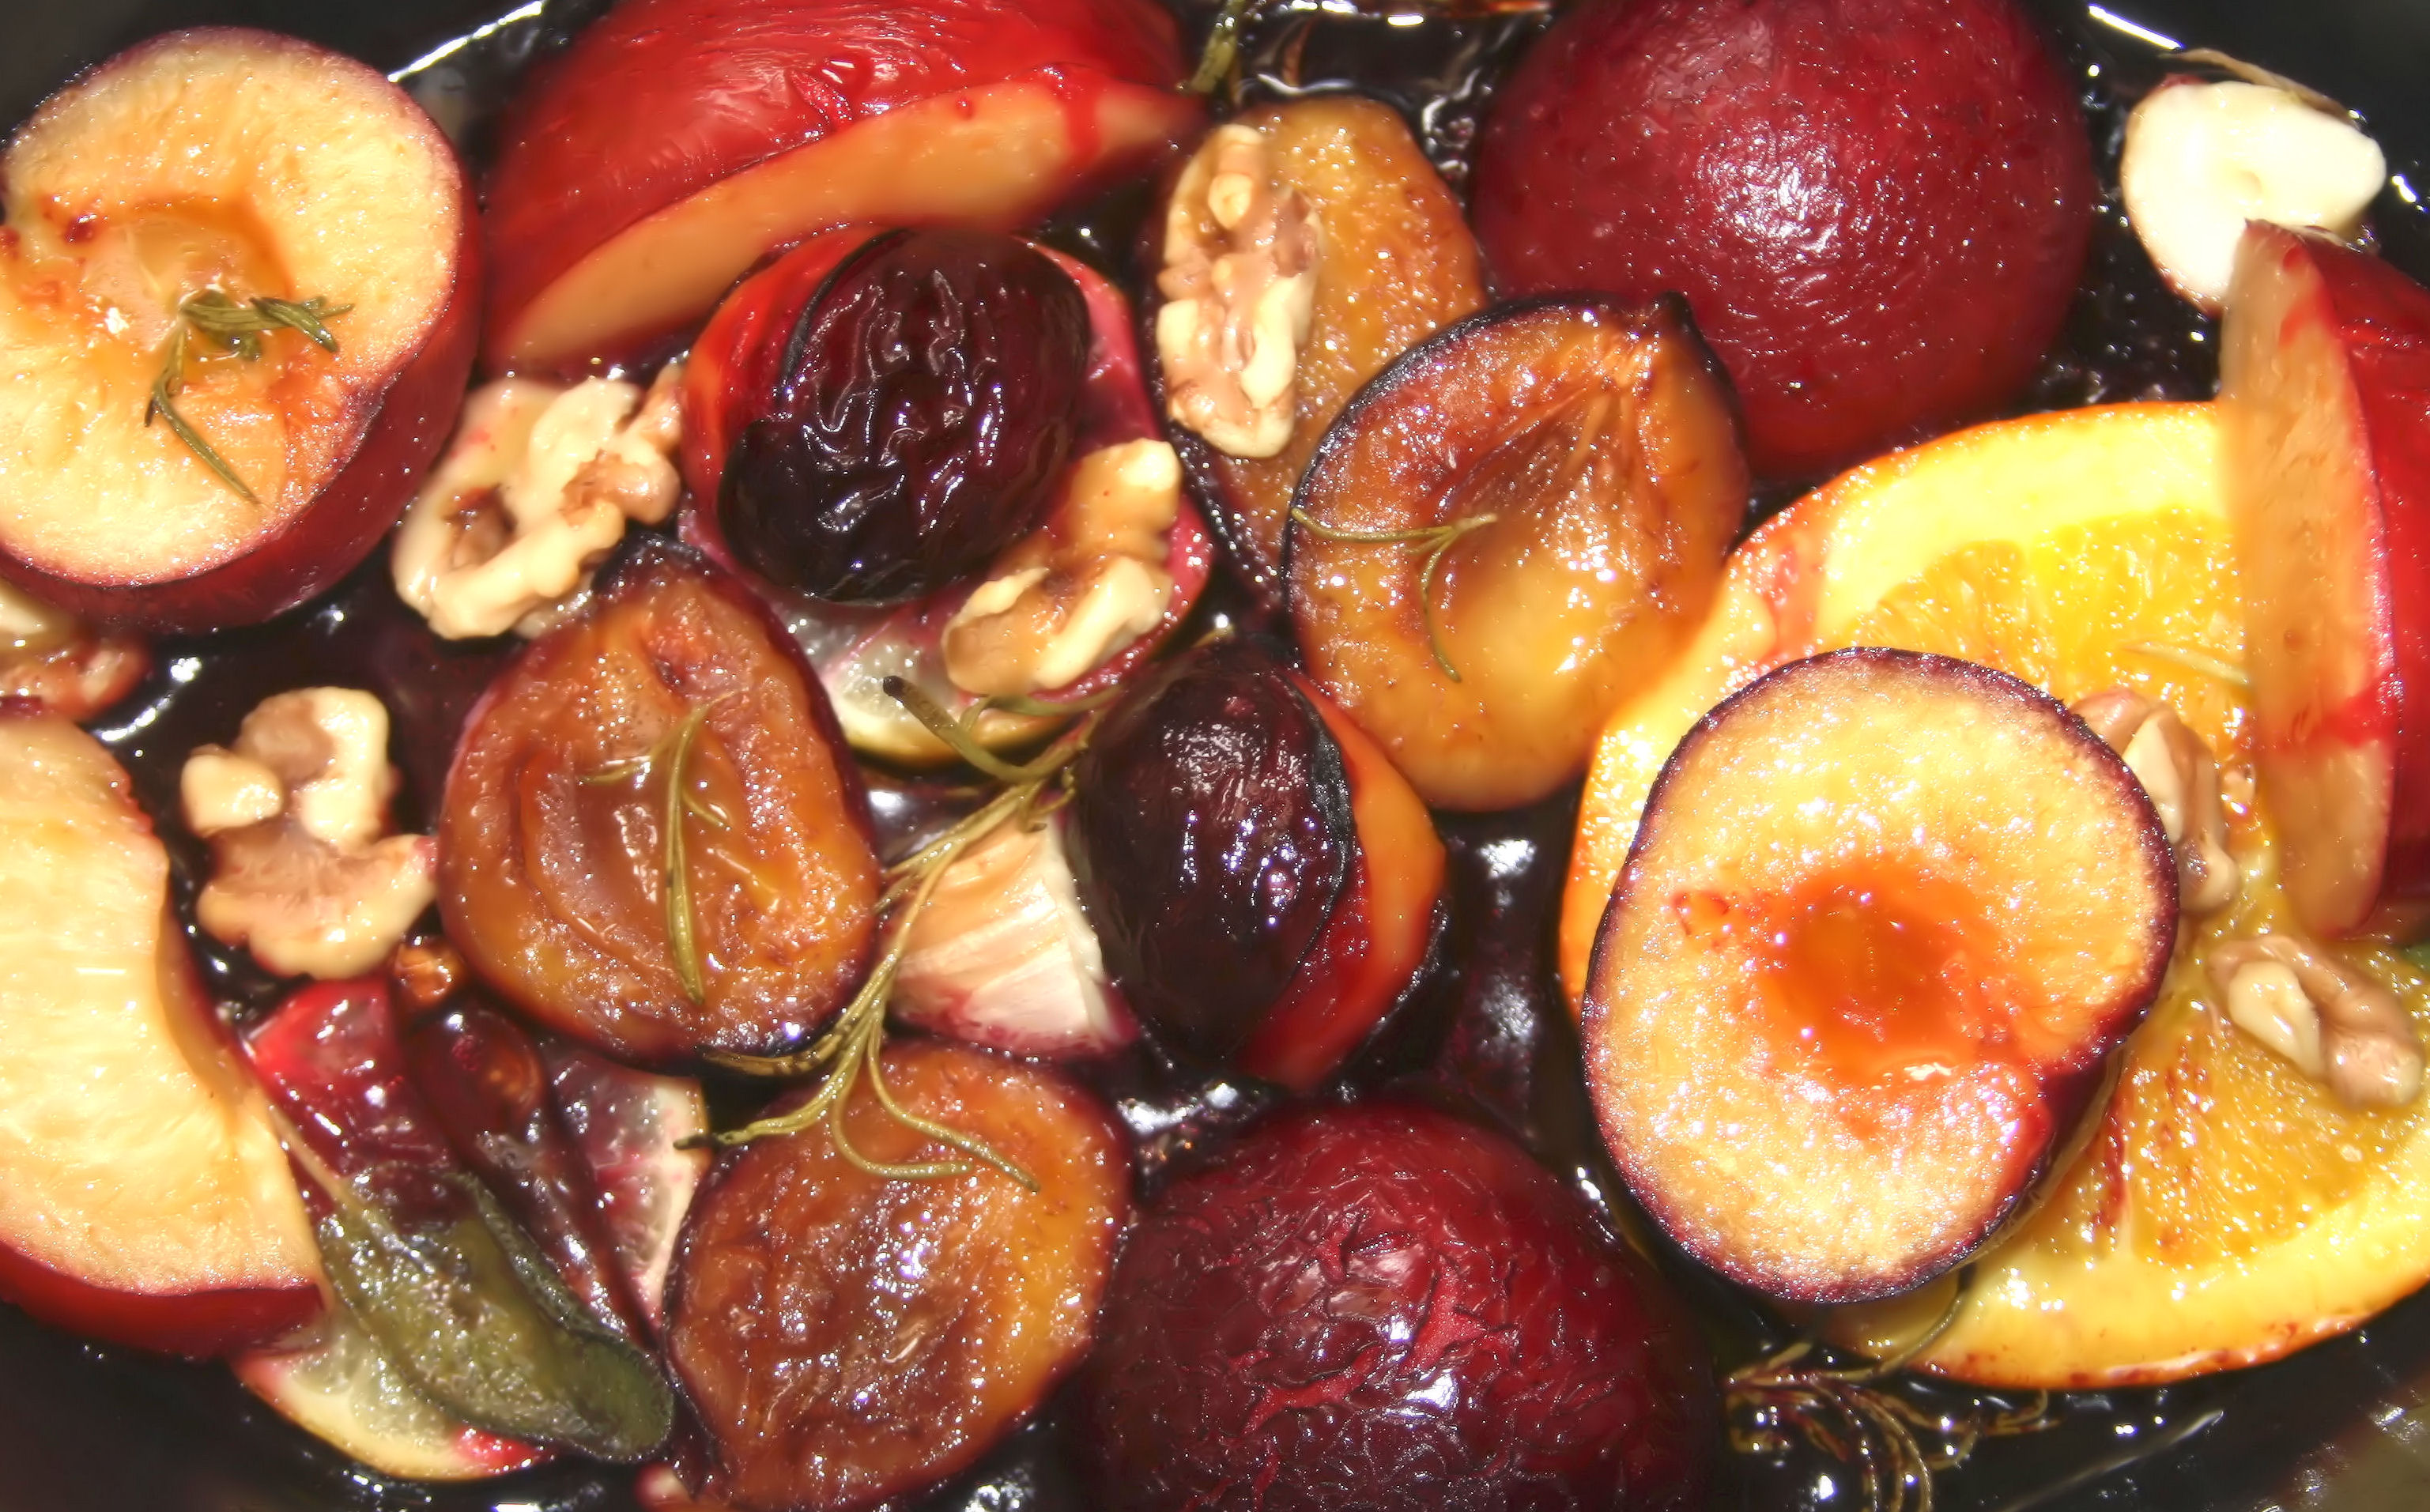 roasted plums with walnuts and lemons